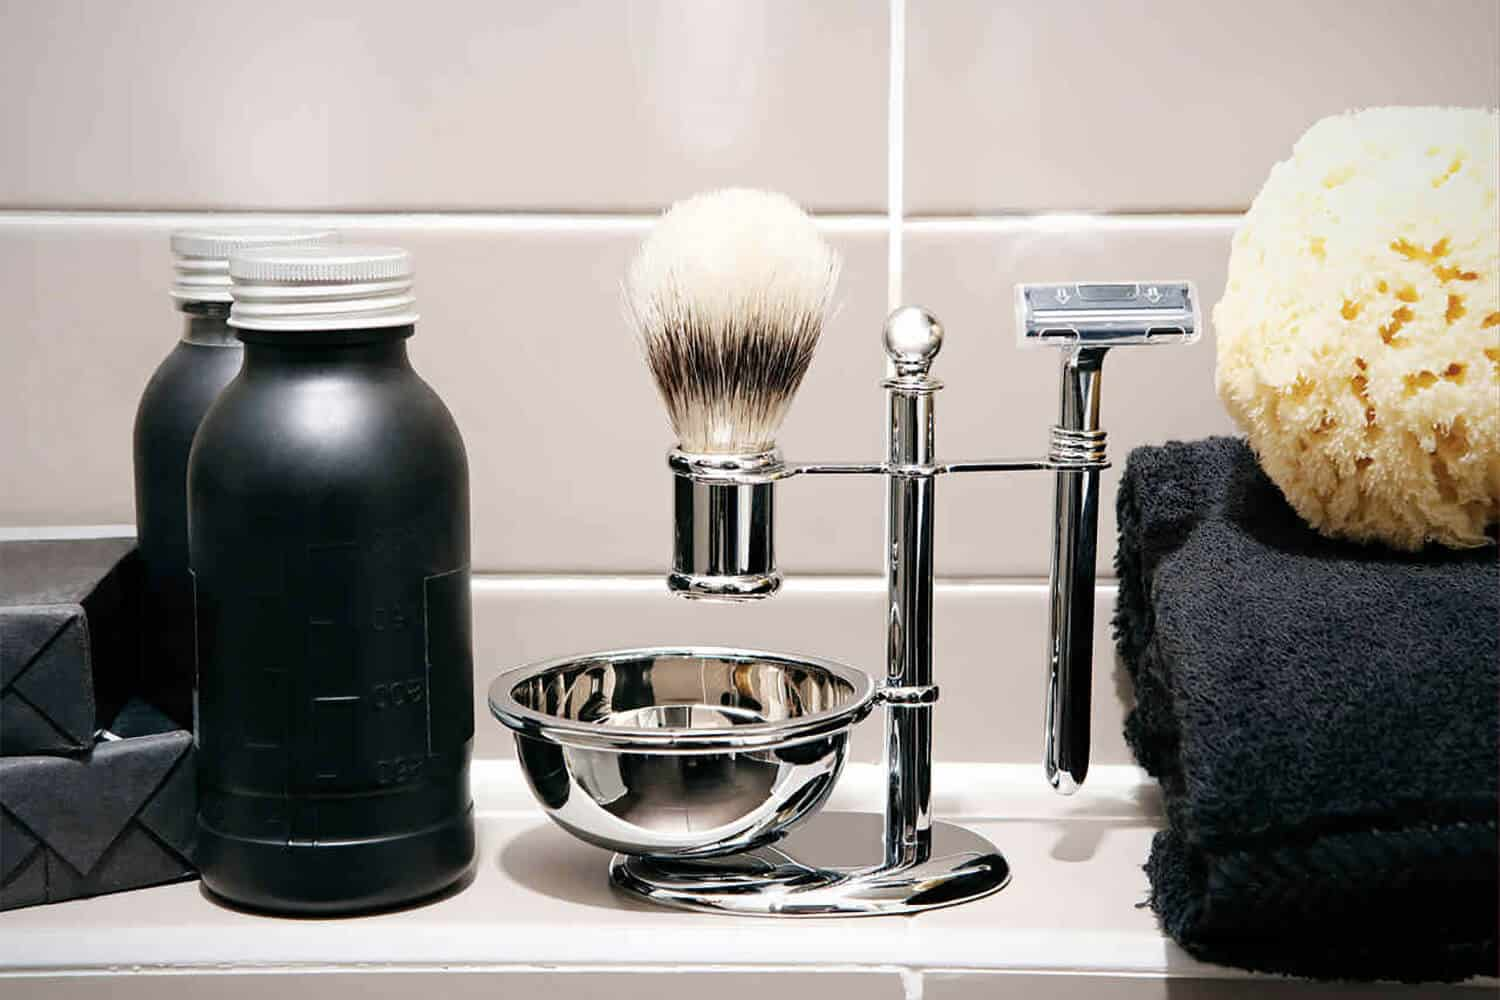 10 Best Shaving Kits For Men That Make For Great Gifts 2019